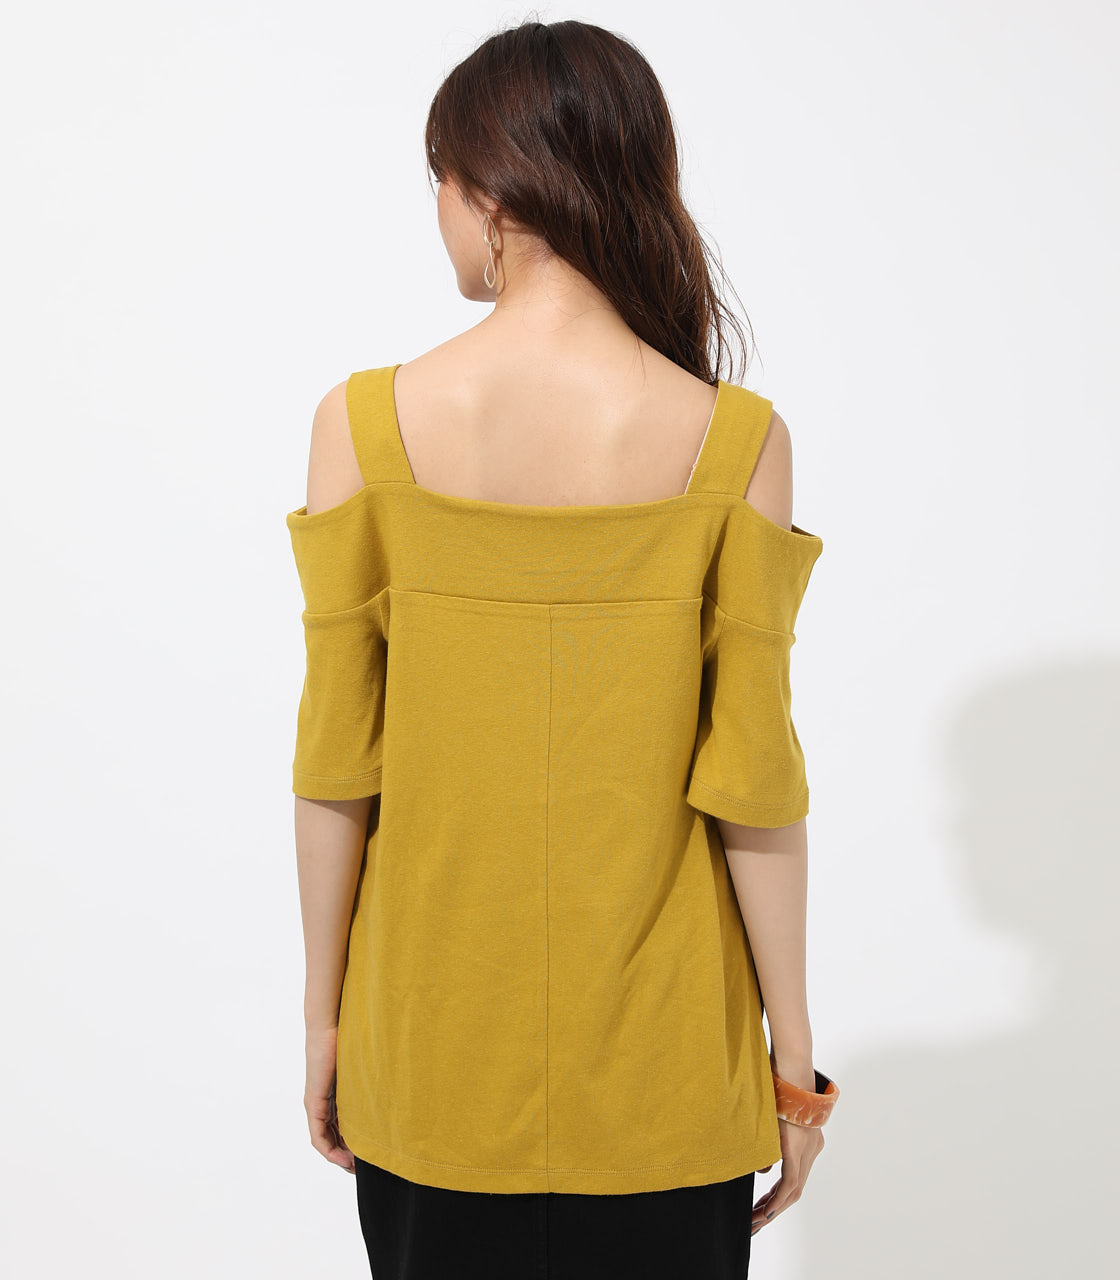 WIDE STRAP OPEN SHOULDER TOPS 詳細画像 D/YEL 6